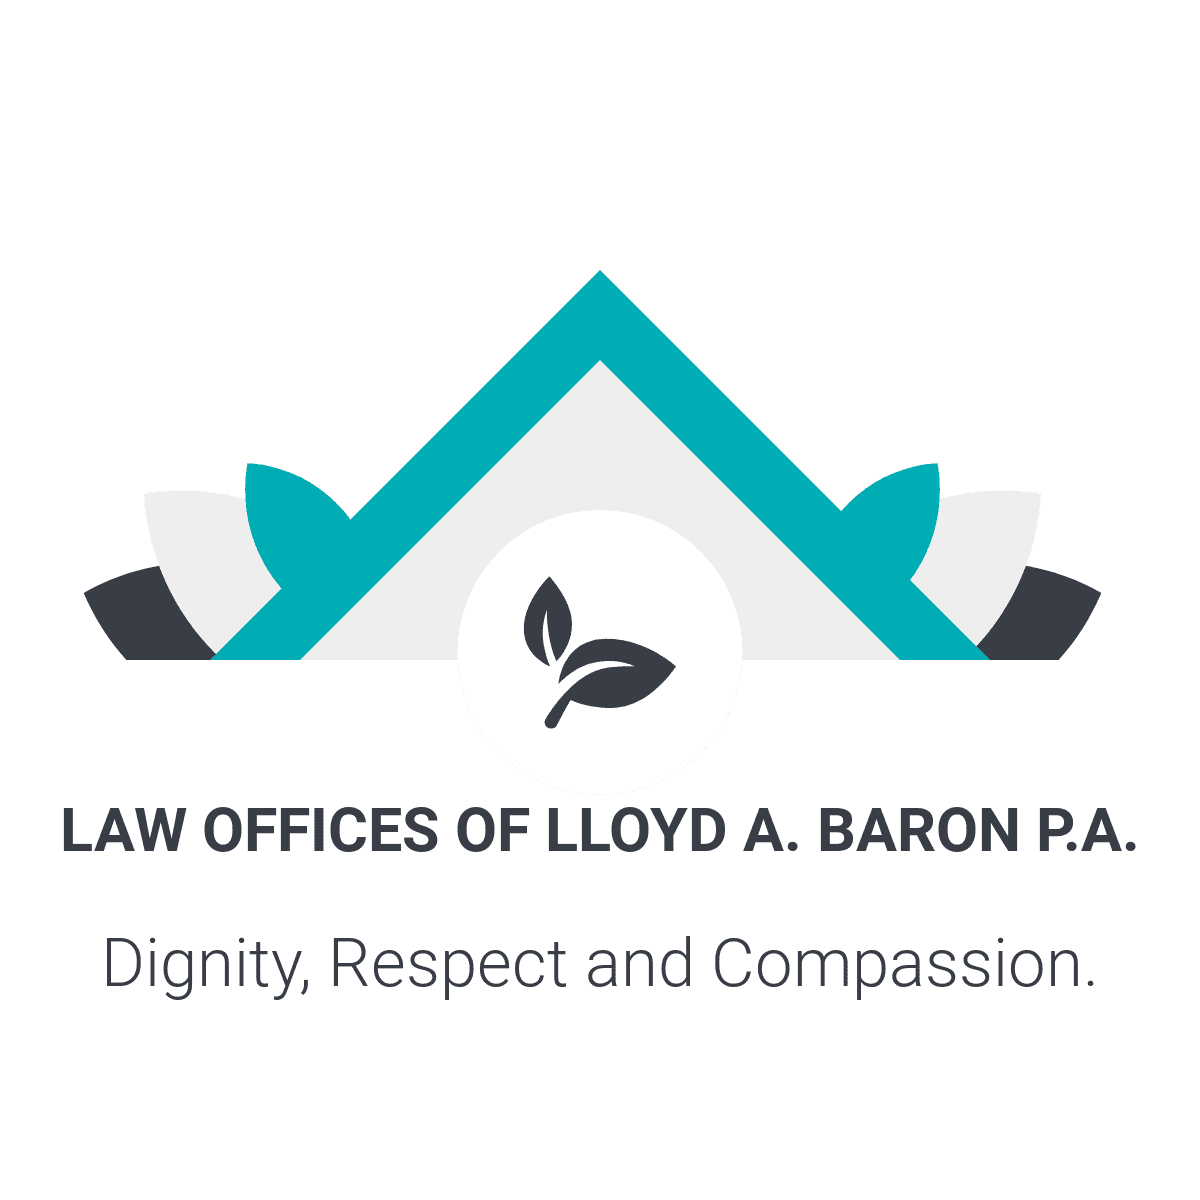 LAW OFFICES OF LLOYD A. BARON P.A.